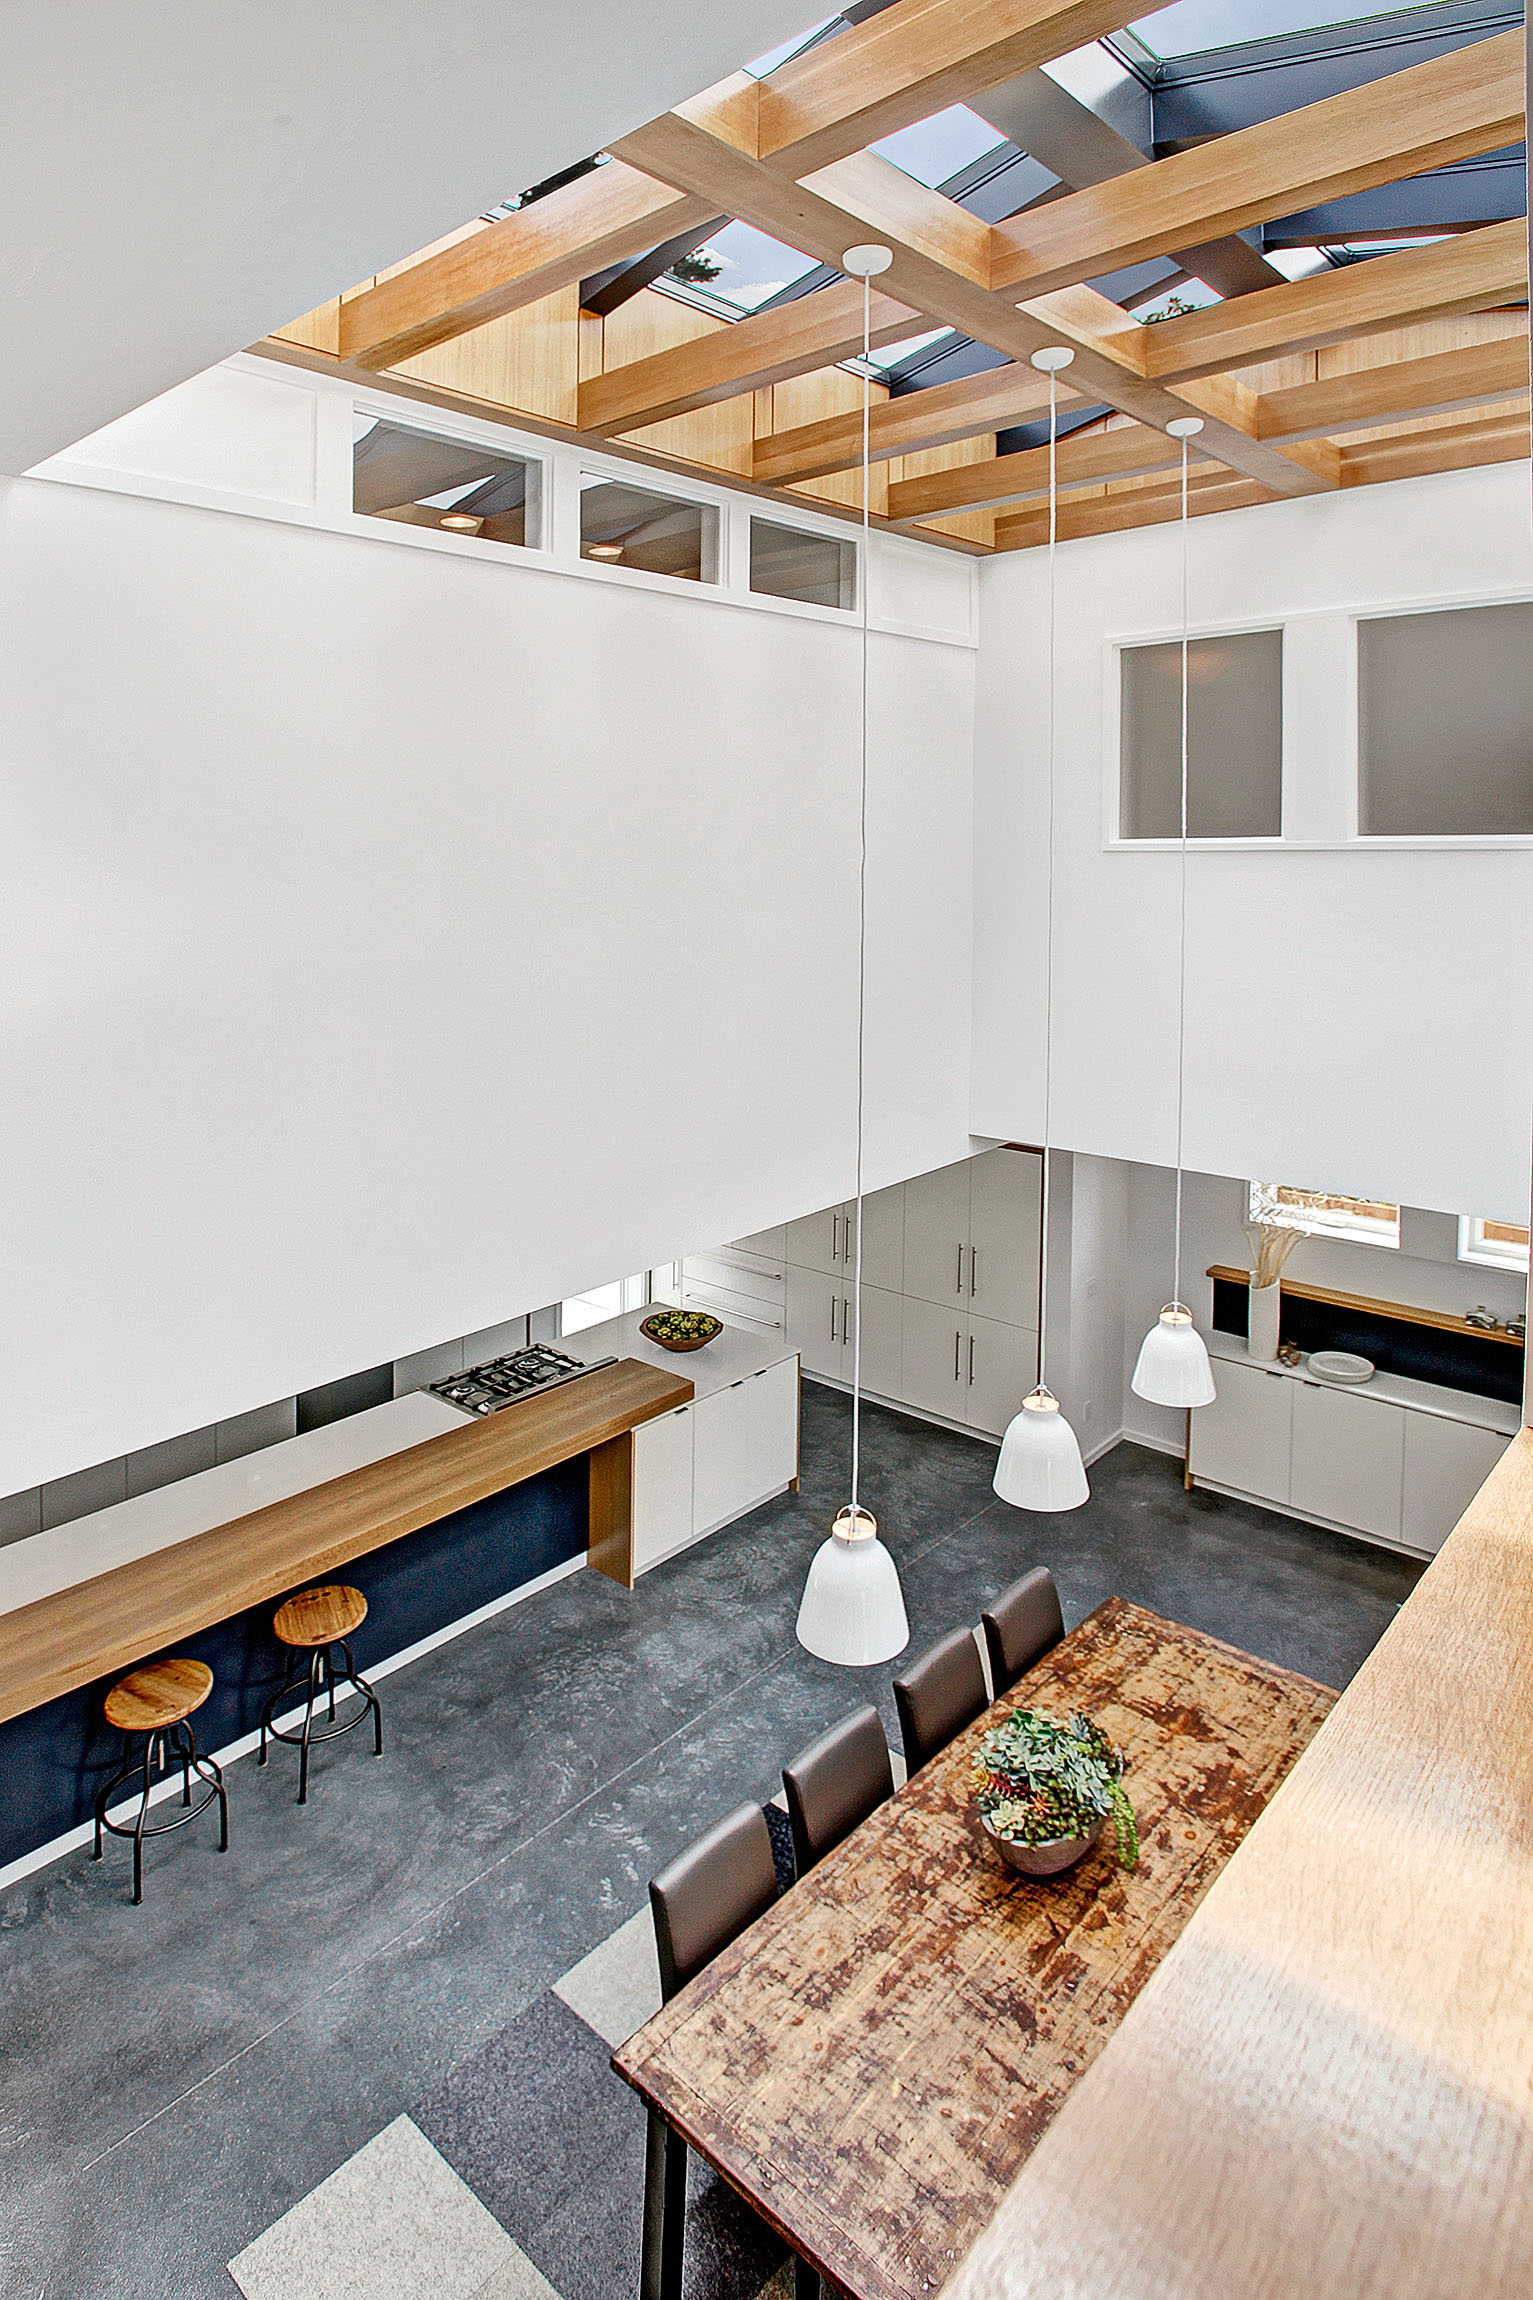 Wood wrapped structure with skylights above makes a special moment above this double height space.